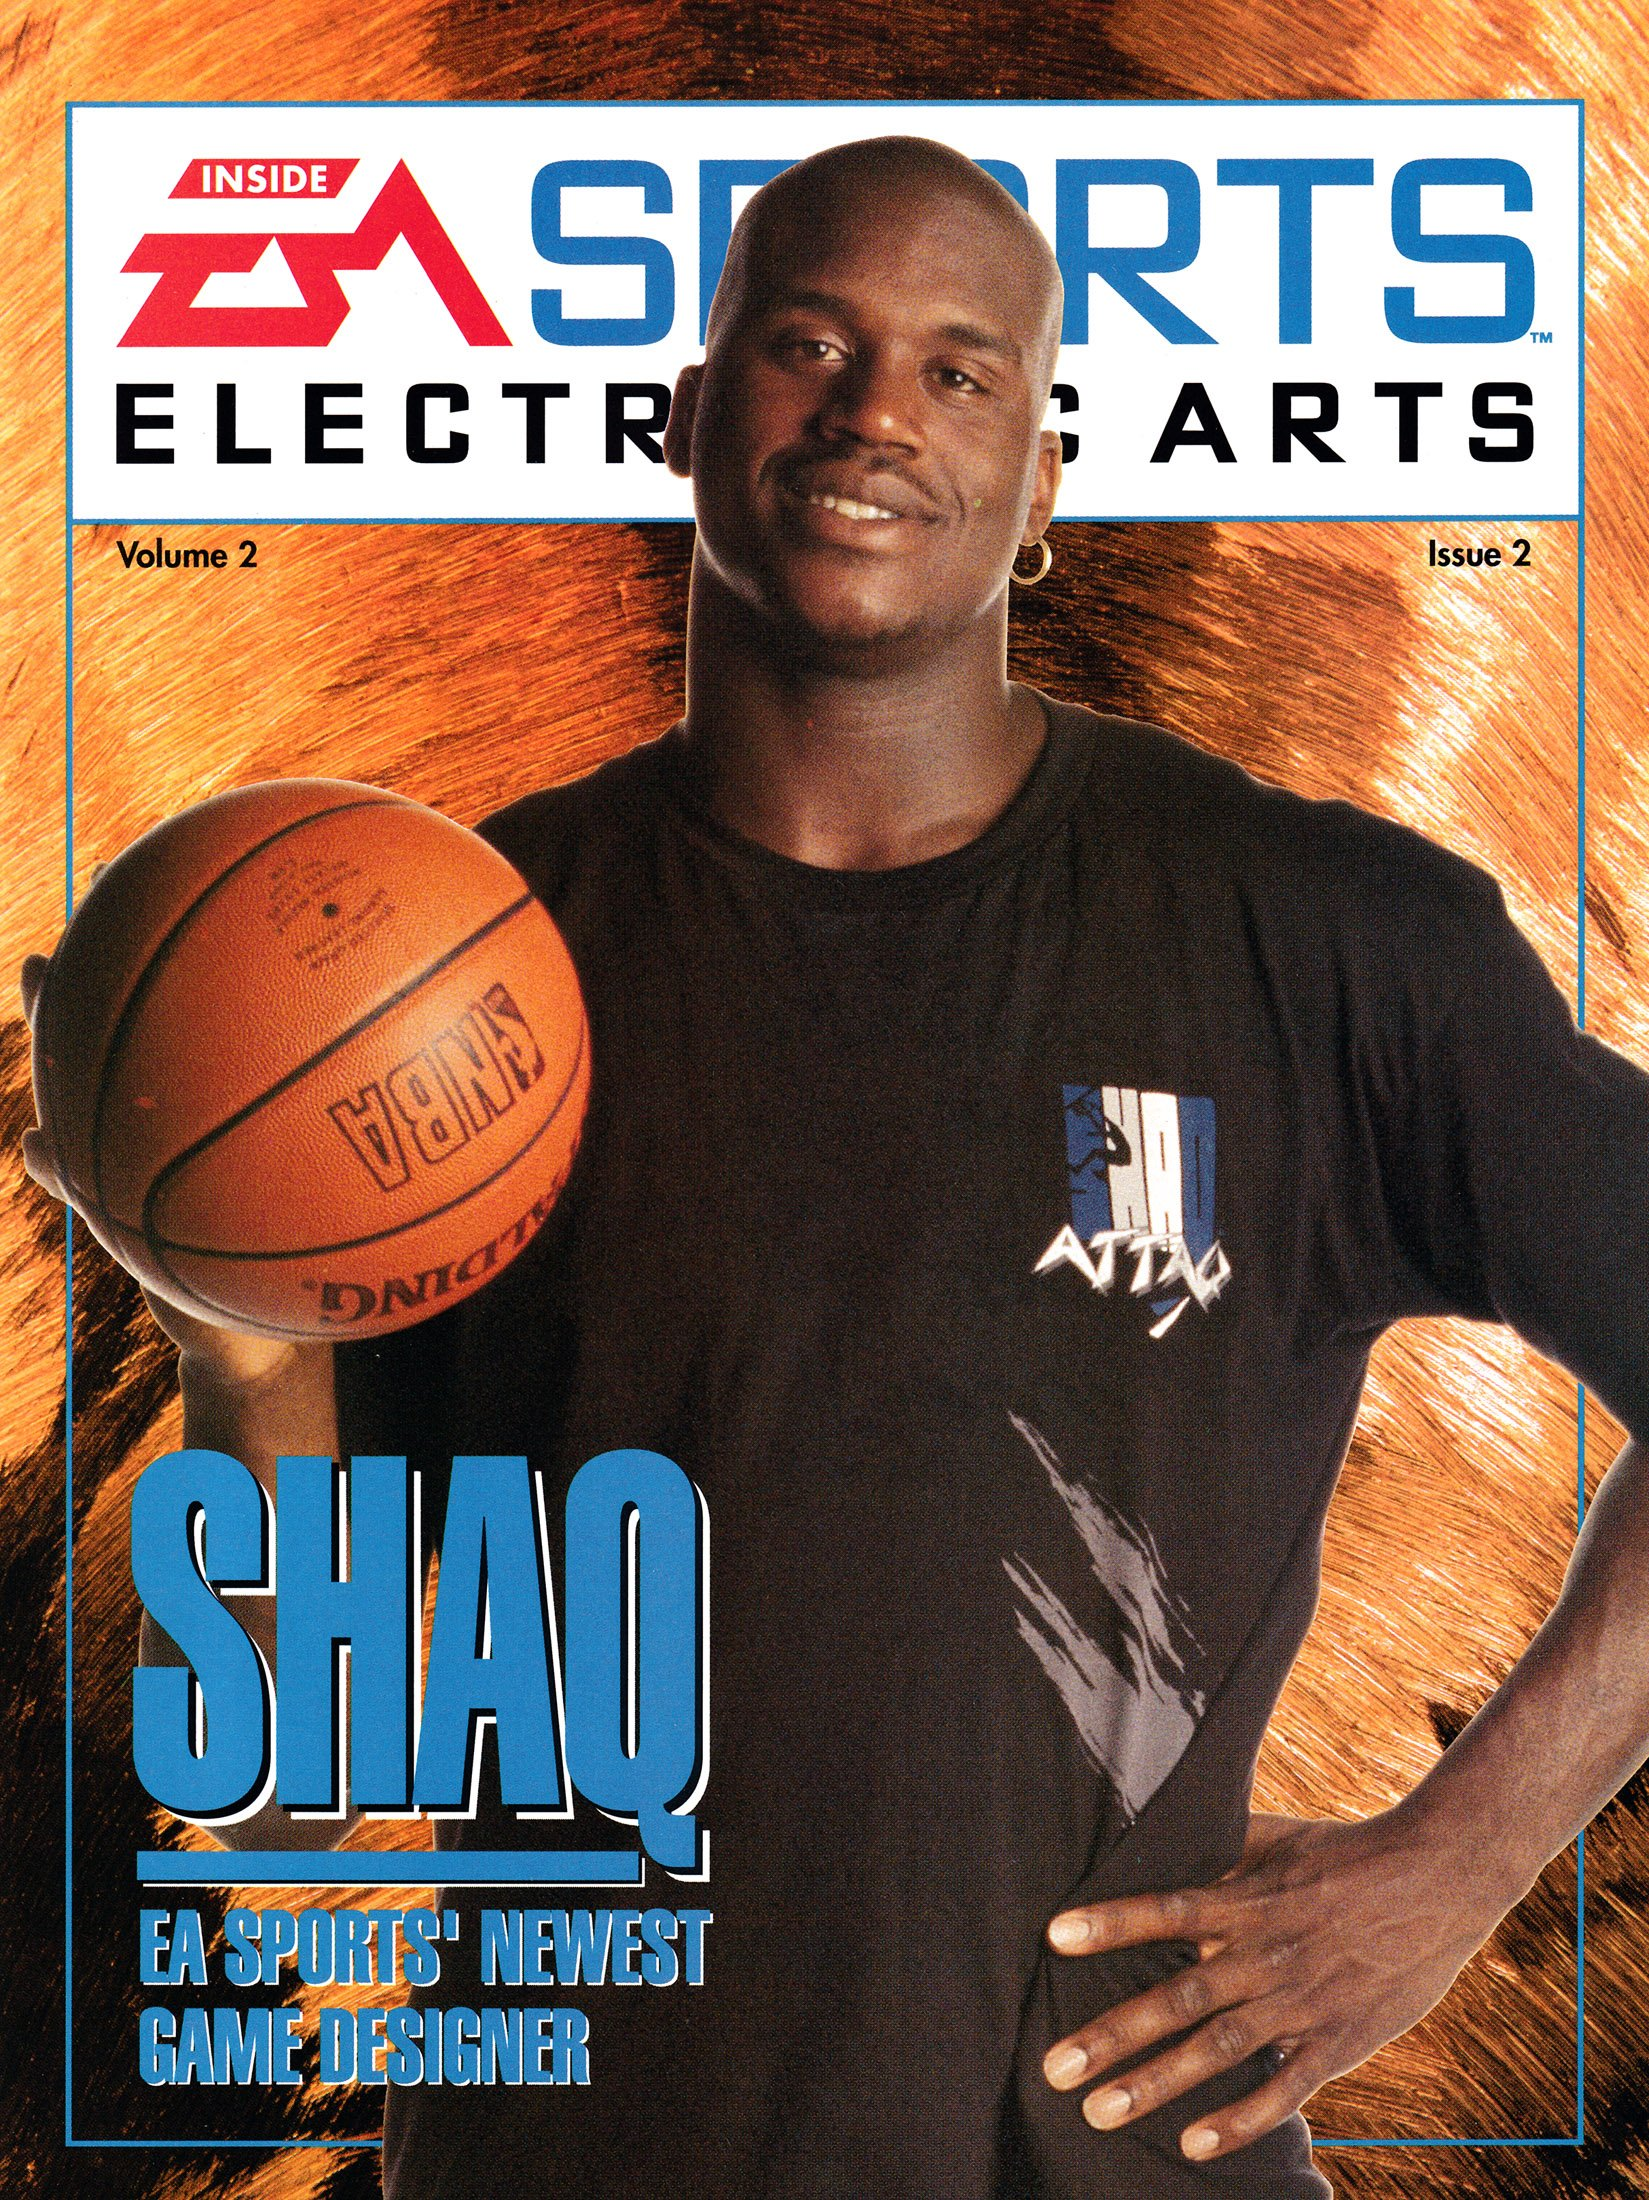 Inside EA Sports Volume 2 Issue 2